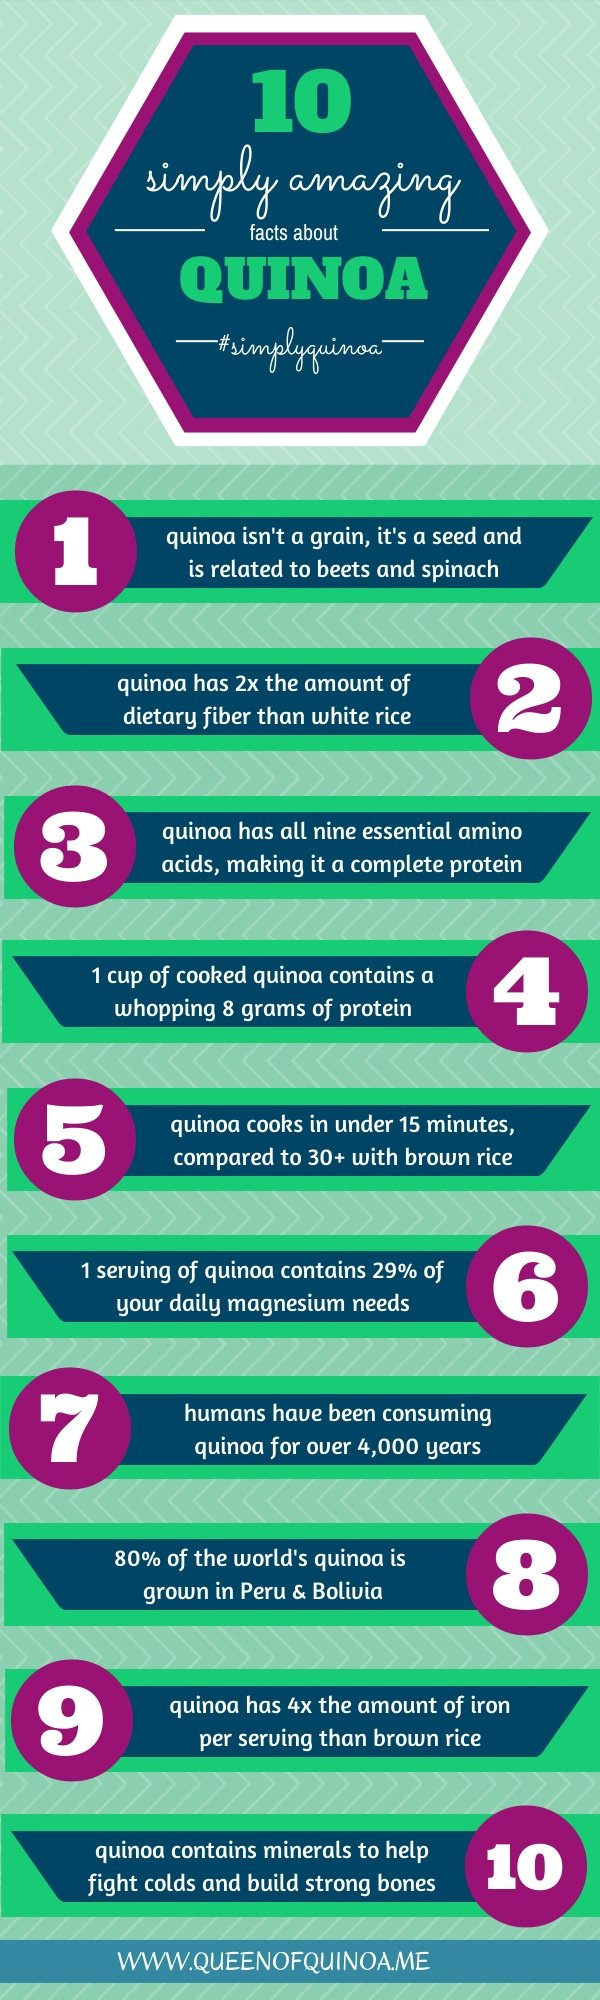 10 Simply Amazing Facts about Quinoa and why this #glutenfree food is so special